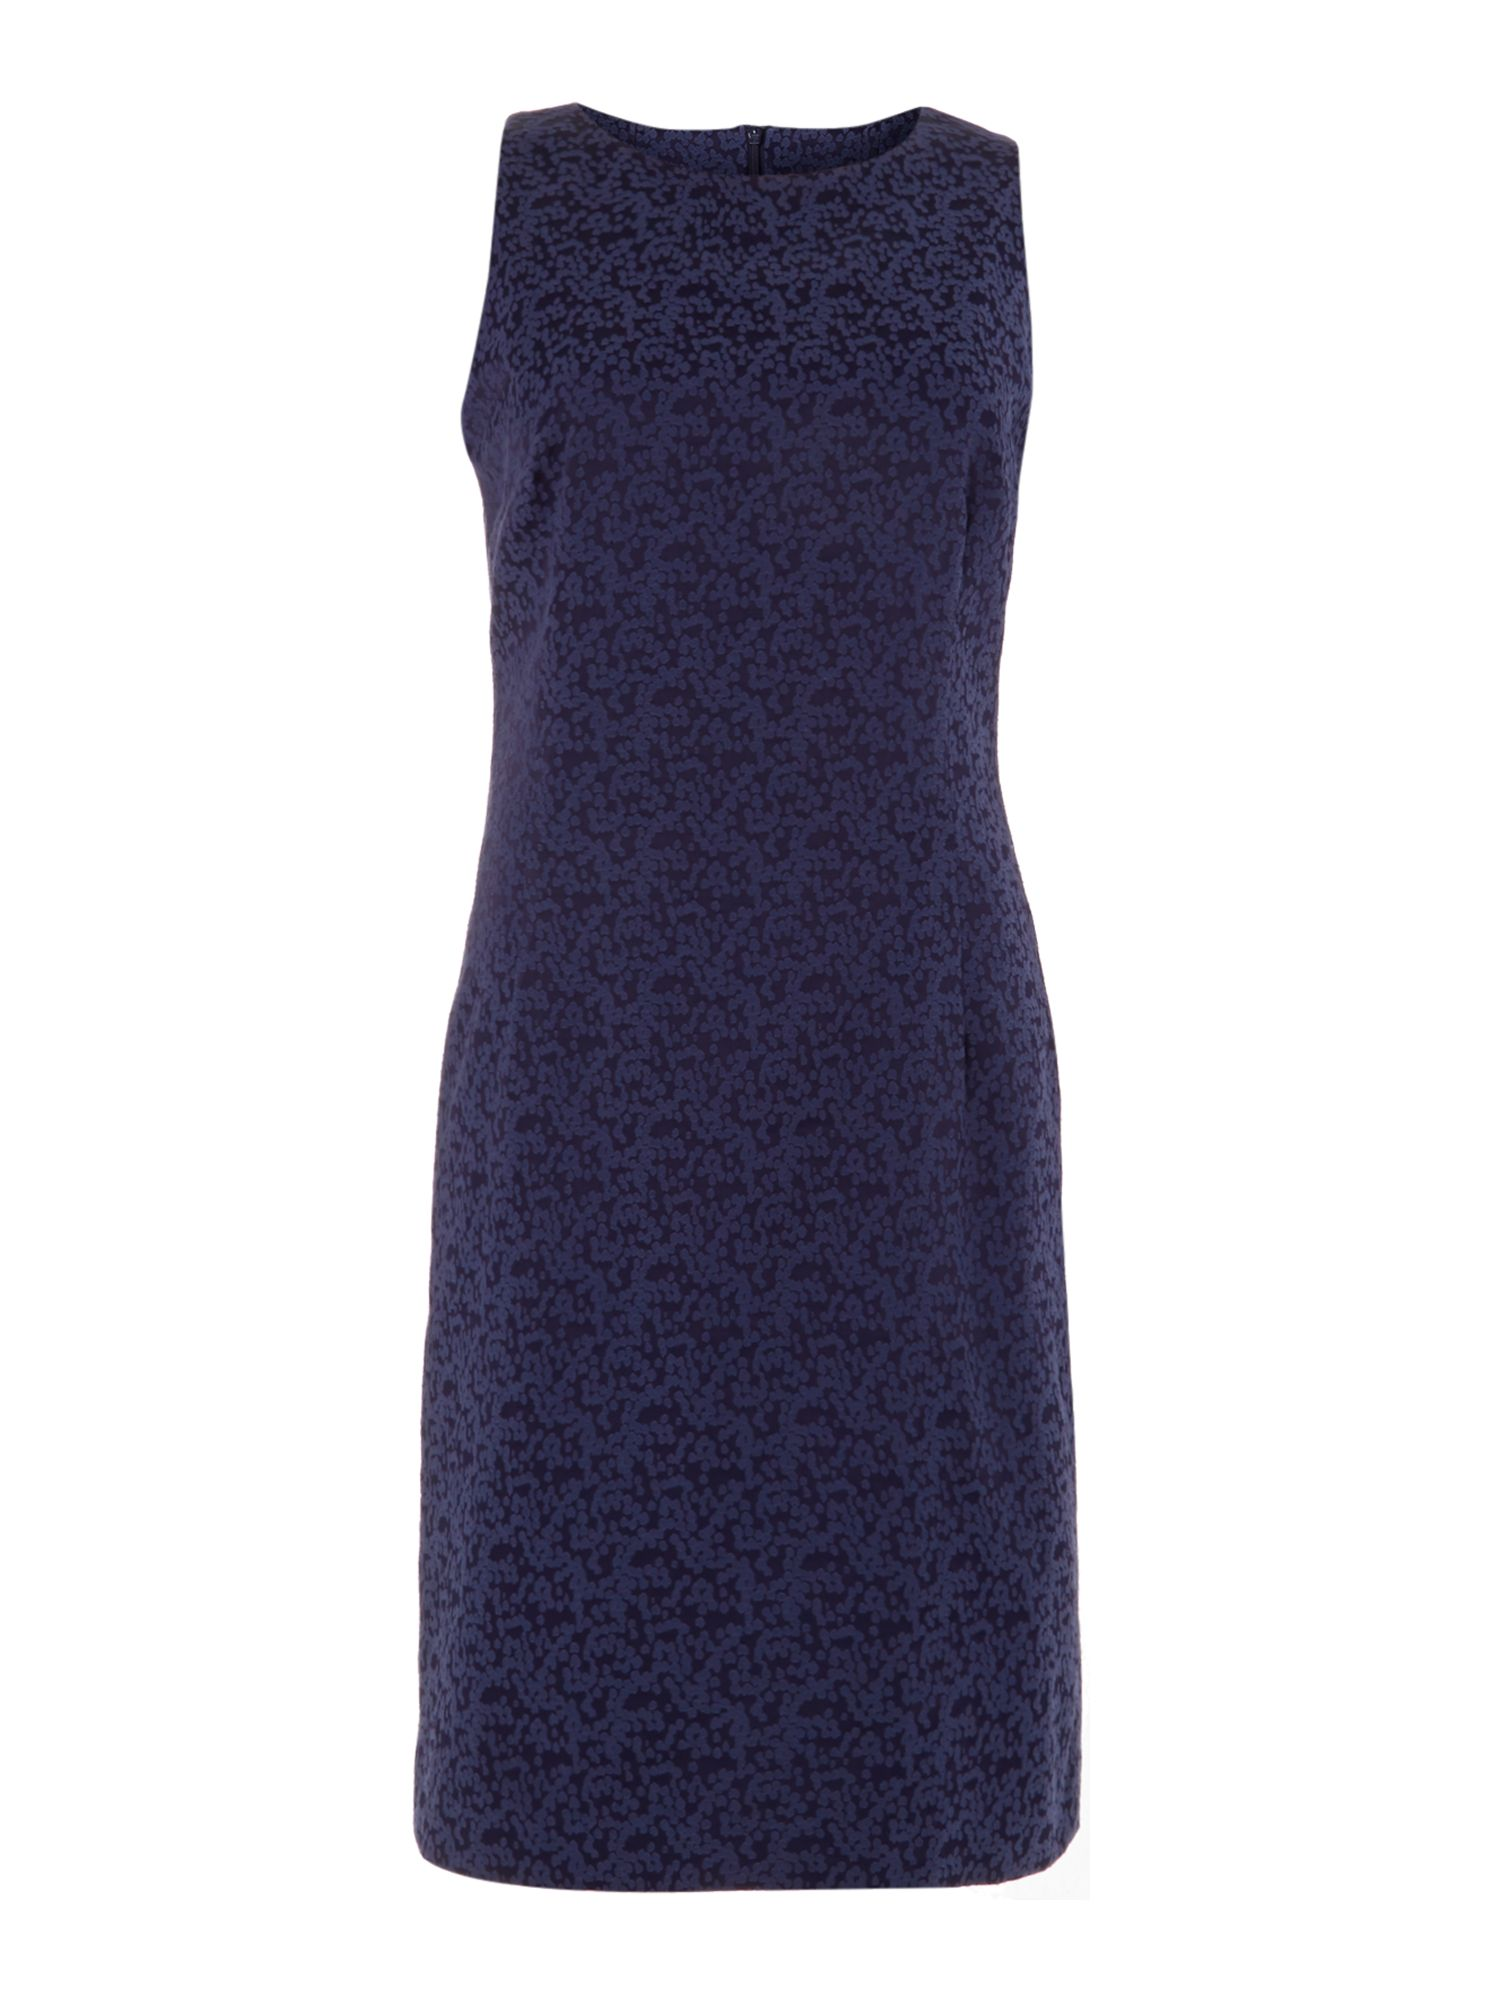 Connie spot jacquard shift dress